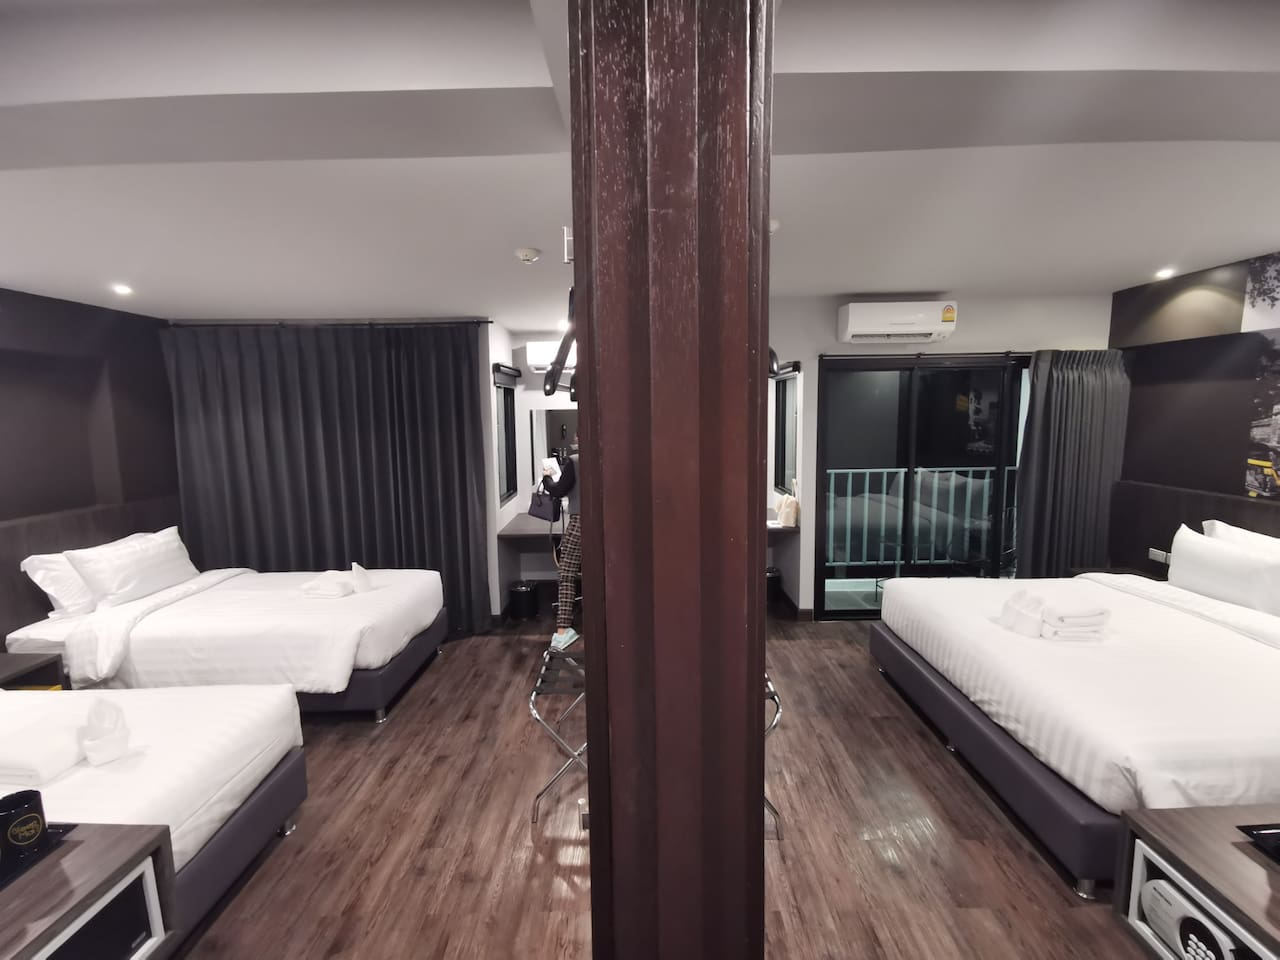 Connecting room with balcony, one bedroom is 2 single beds and another one is king size bed.